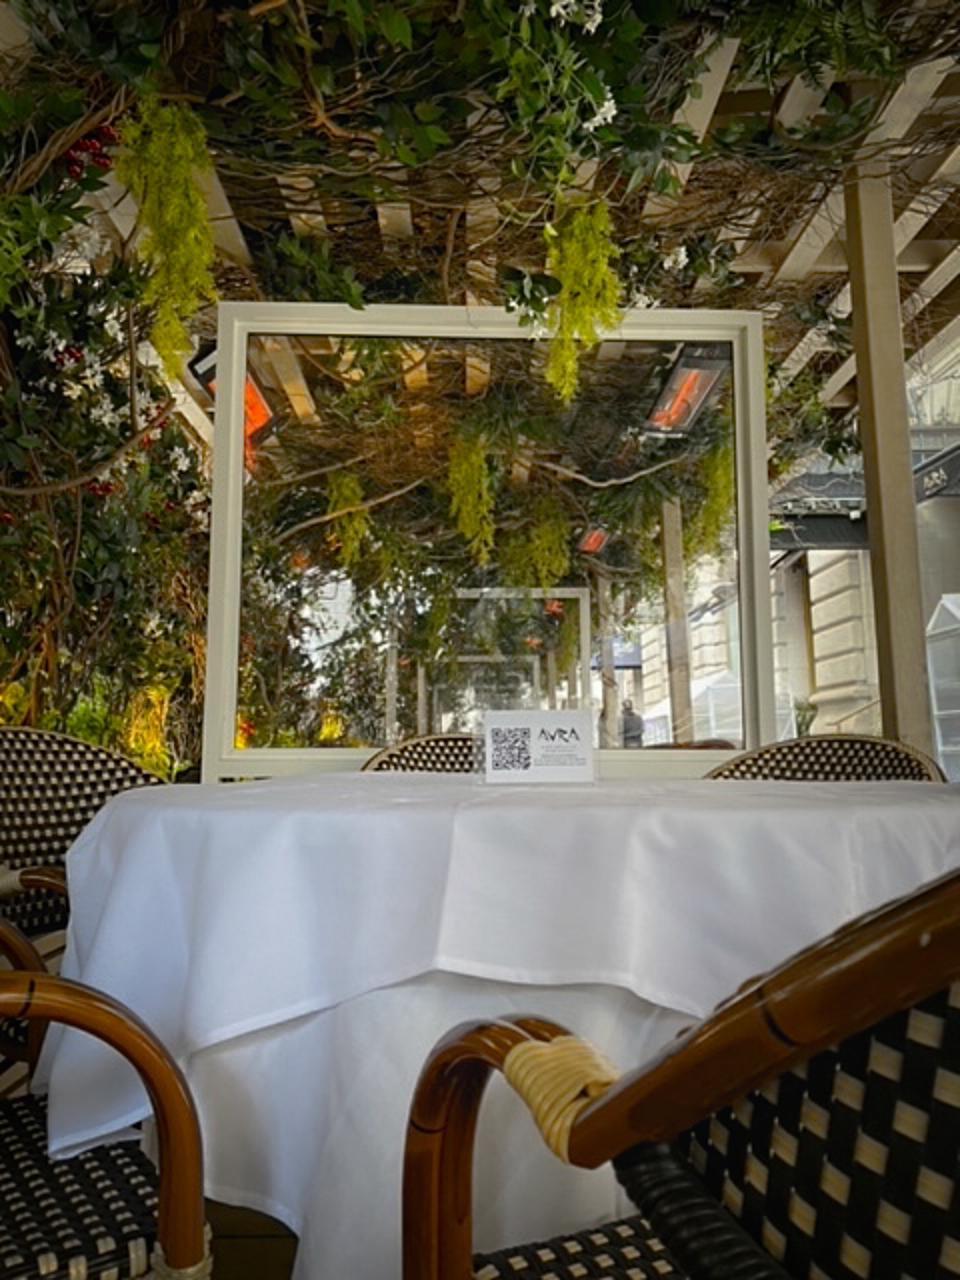 Greek favorite Avra has installed charming plant-filled shelters as well as greenhouses which completely protect patrons from the elements.